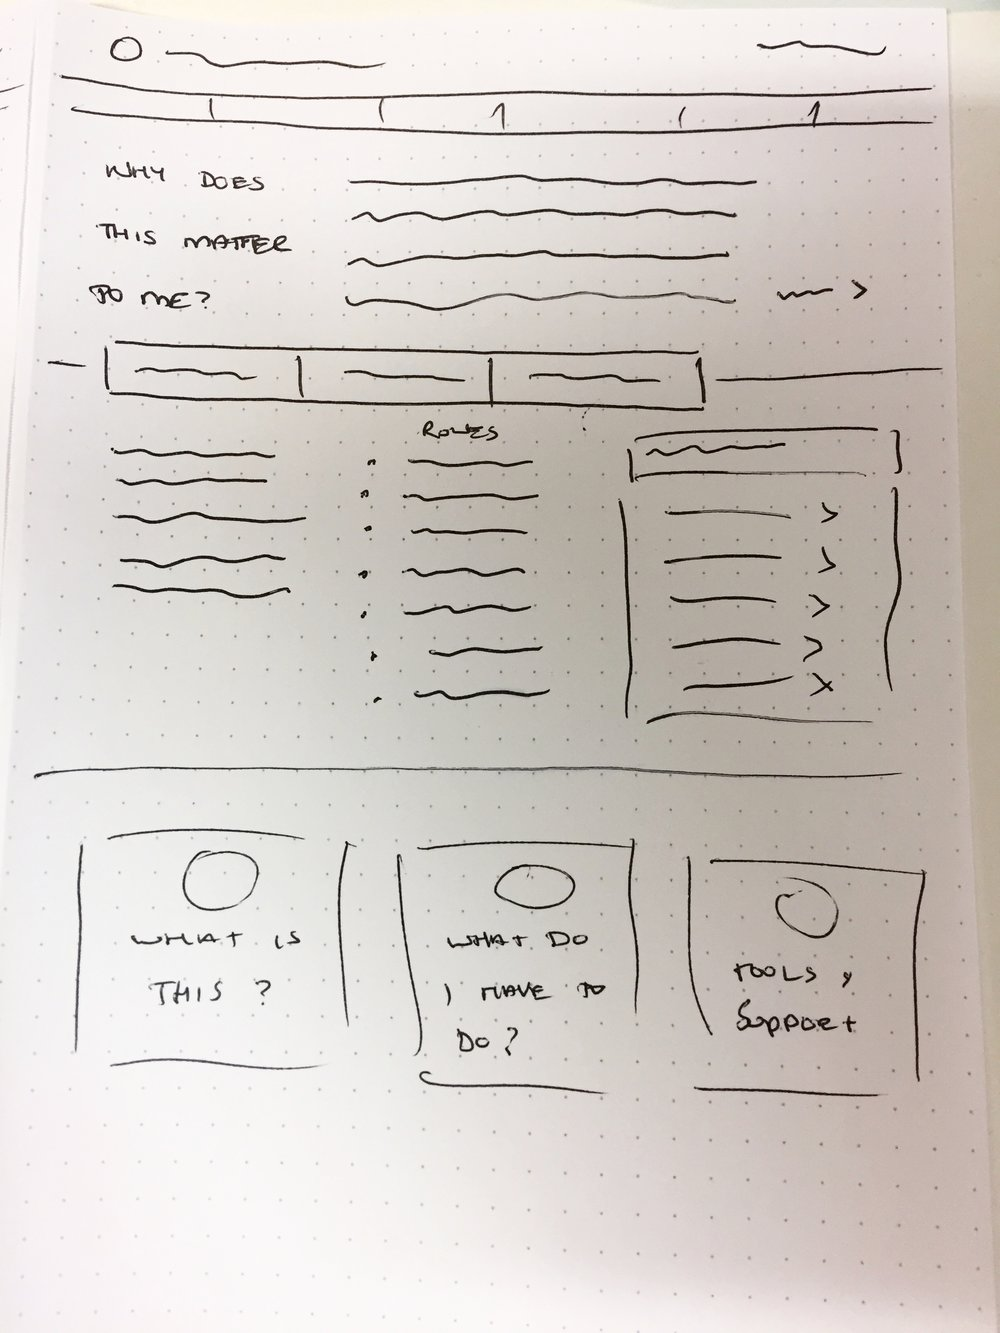 Wireframe sketches for potential solutions to better communicate with their staff